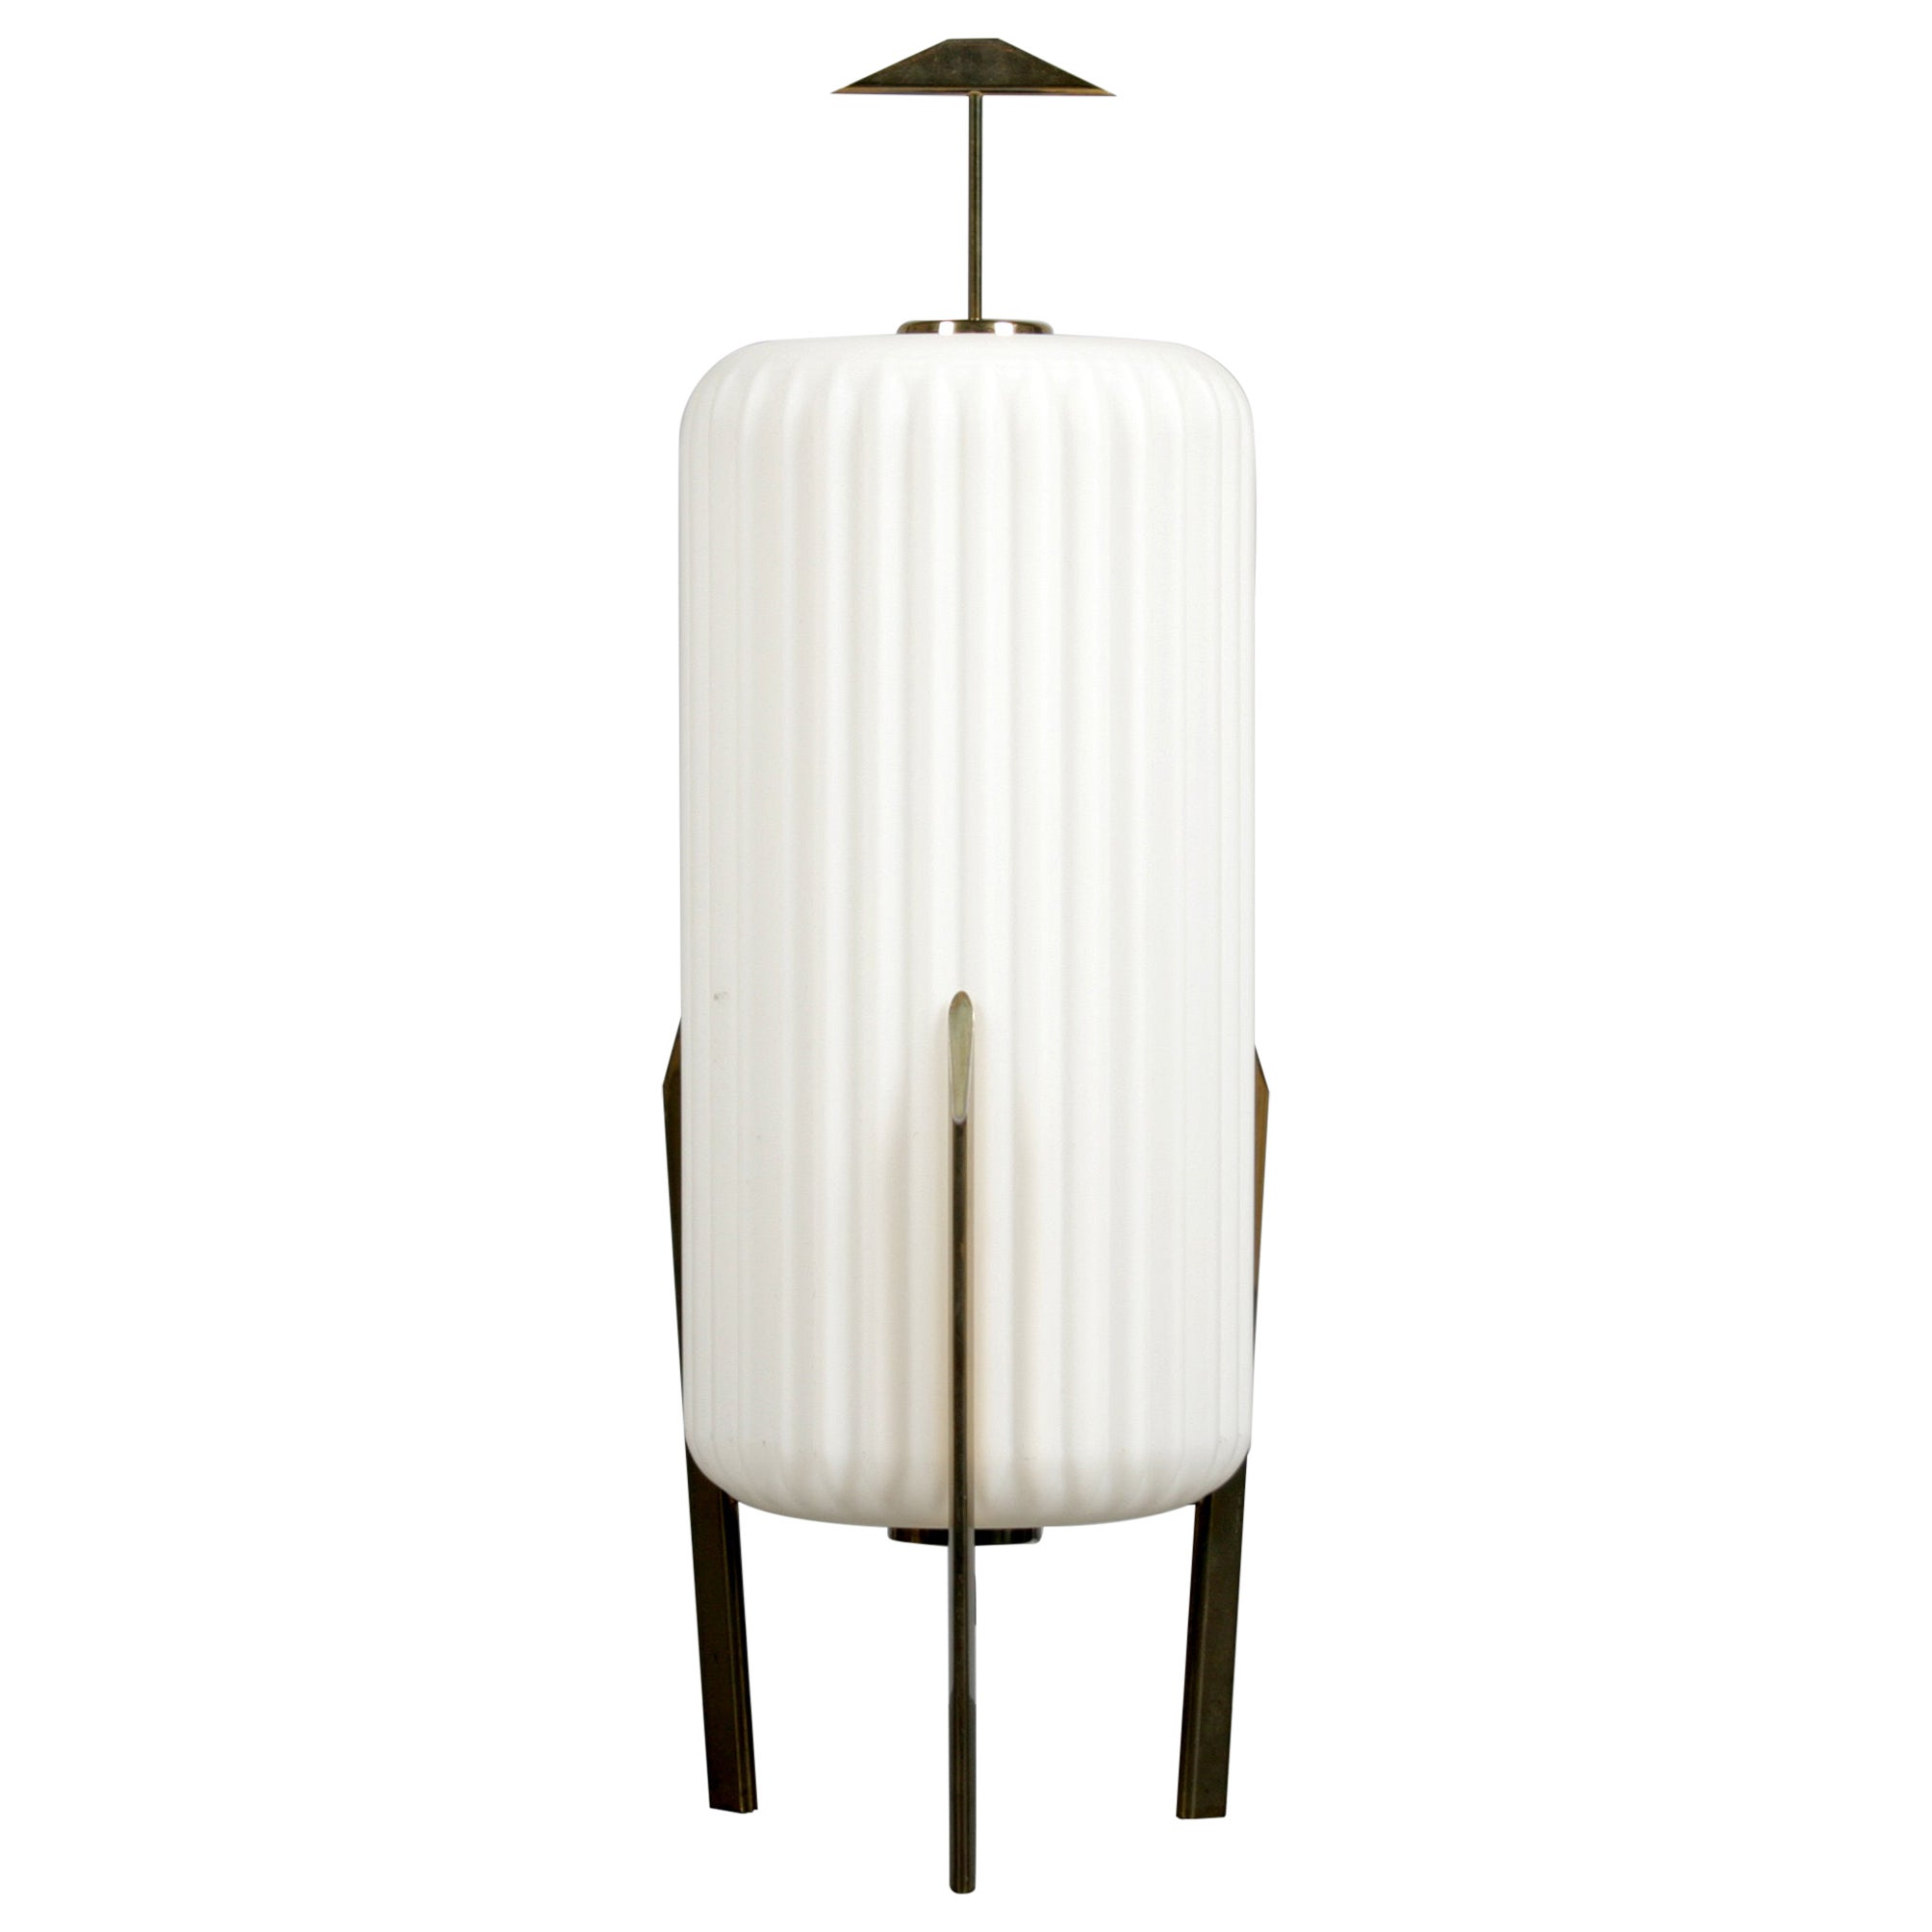 Mid Century Modern Table Lamp with Opaque Glass Shade attributed to Arteluce